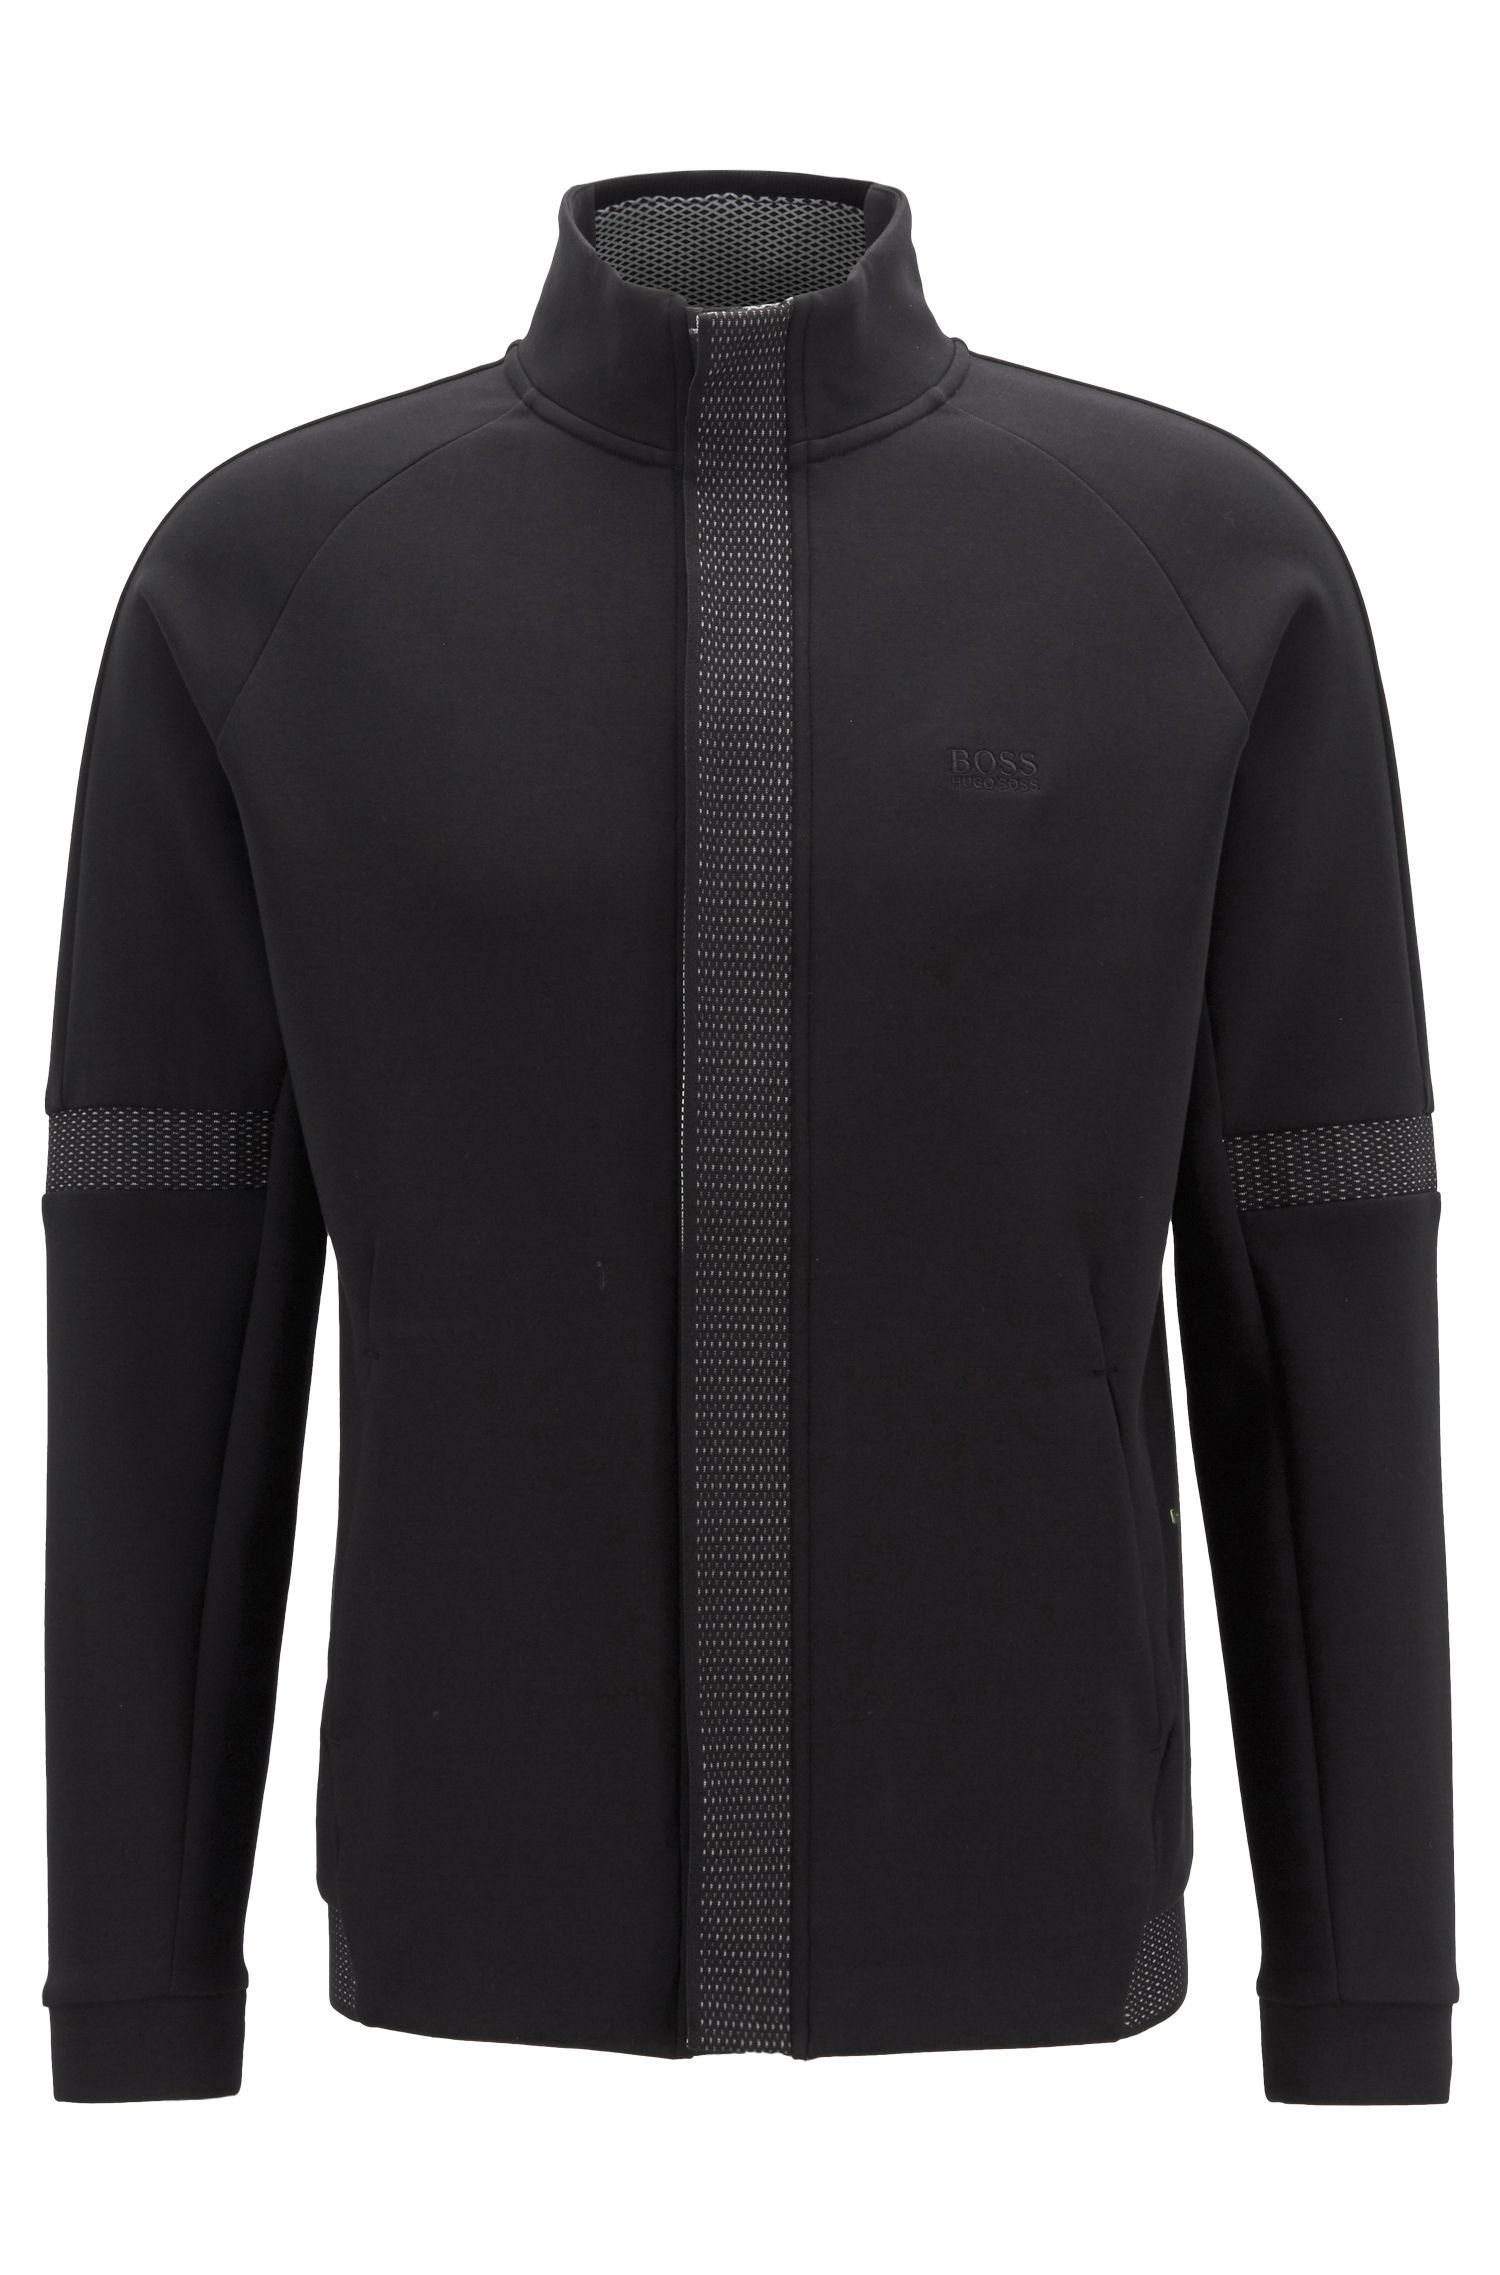 Zipper-front sweatshirt in stretch fabric with tape trims, Black